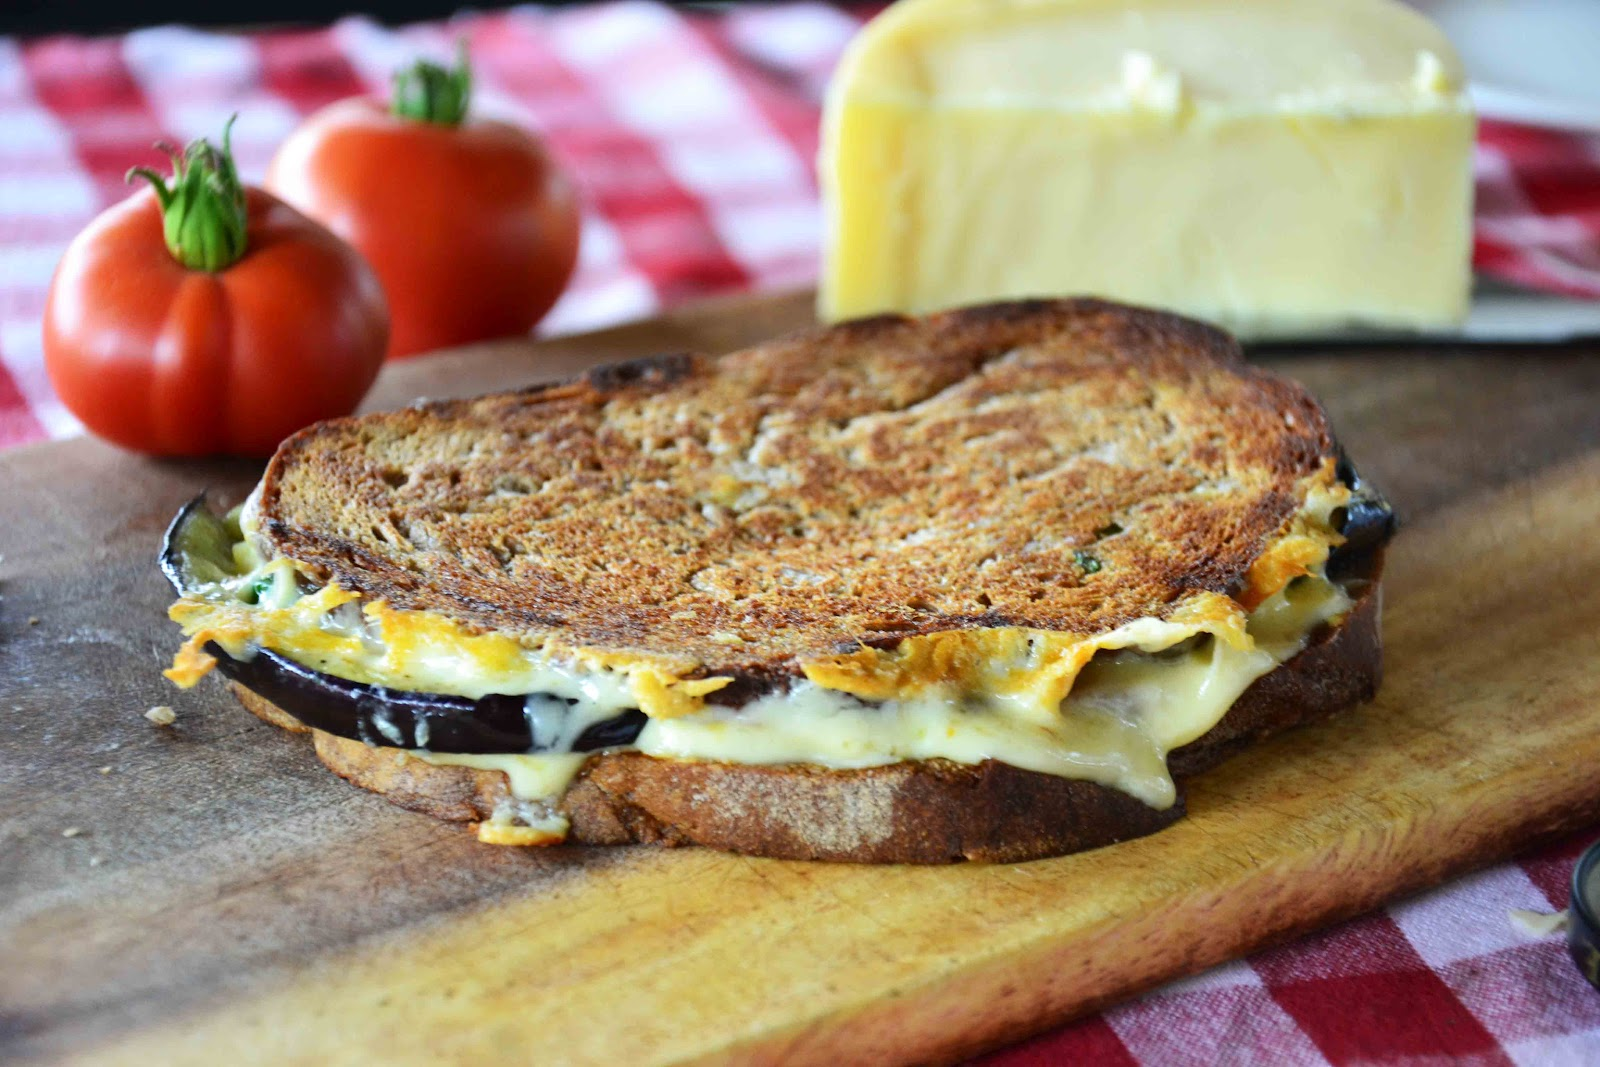 The eccentric Cook: Eggplant-Basil Grilled Cheese on Rye